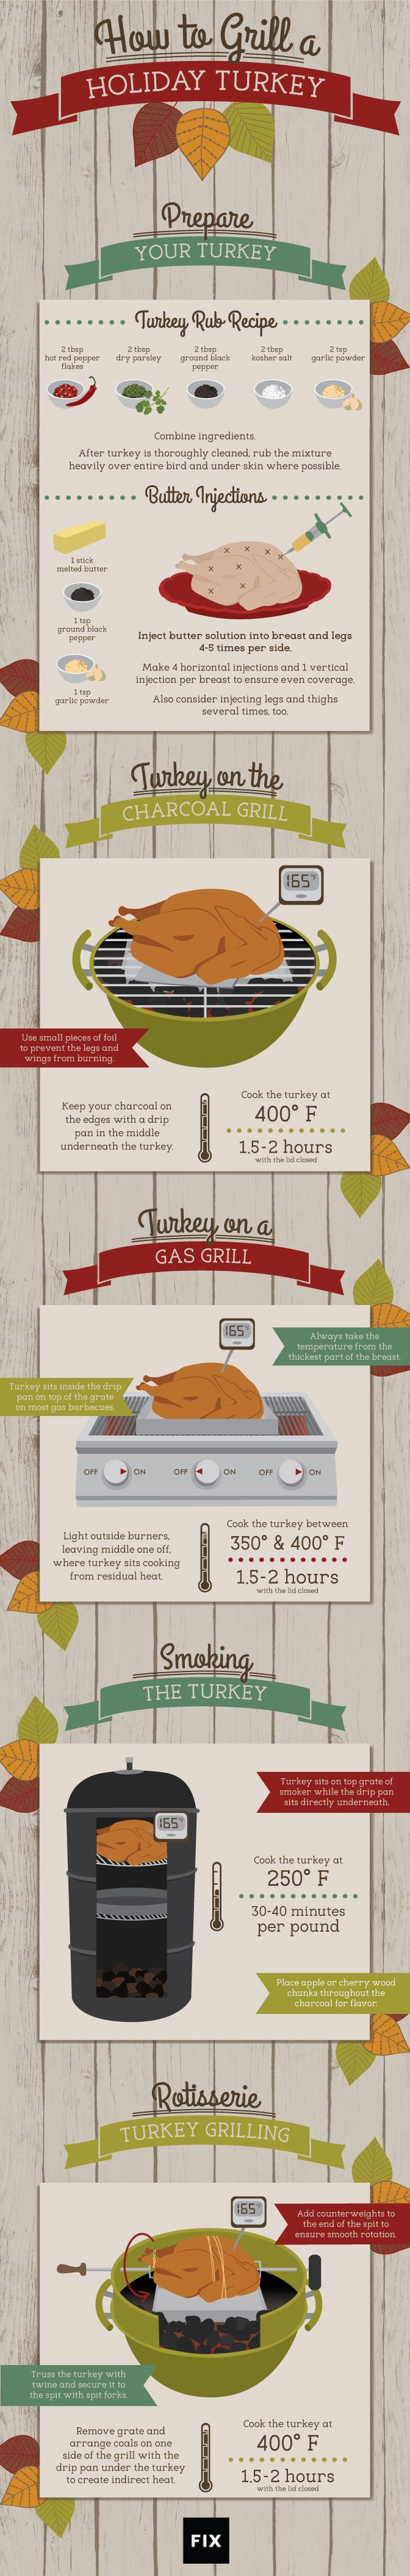 Grill your turkey on the barbecue or slow-cook it in the smoker for a better tasting bird and lots of saved kitchen space this holiday season! Merry Christmas